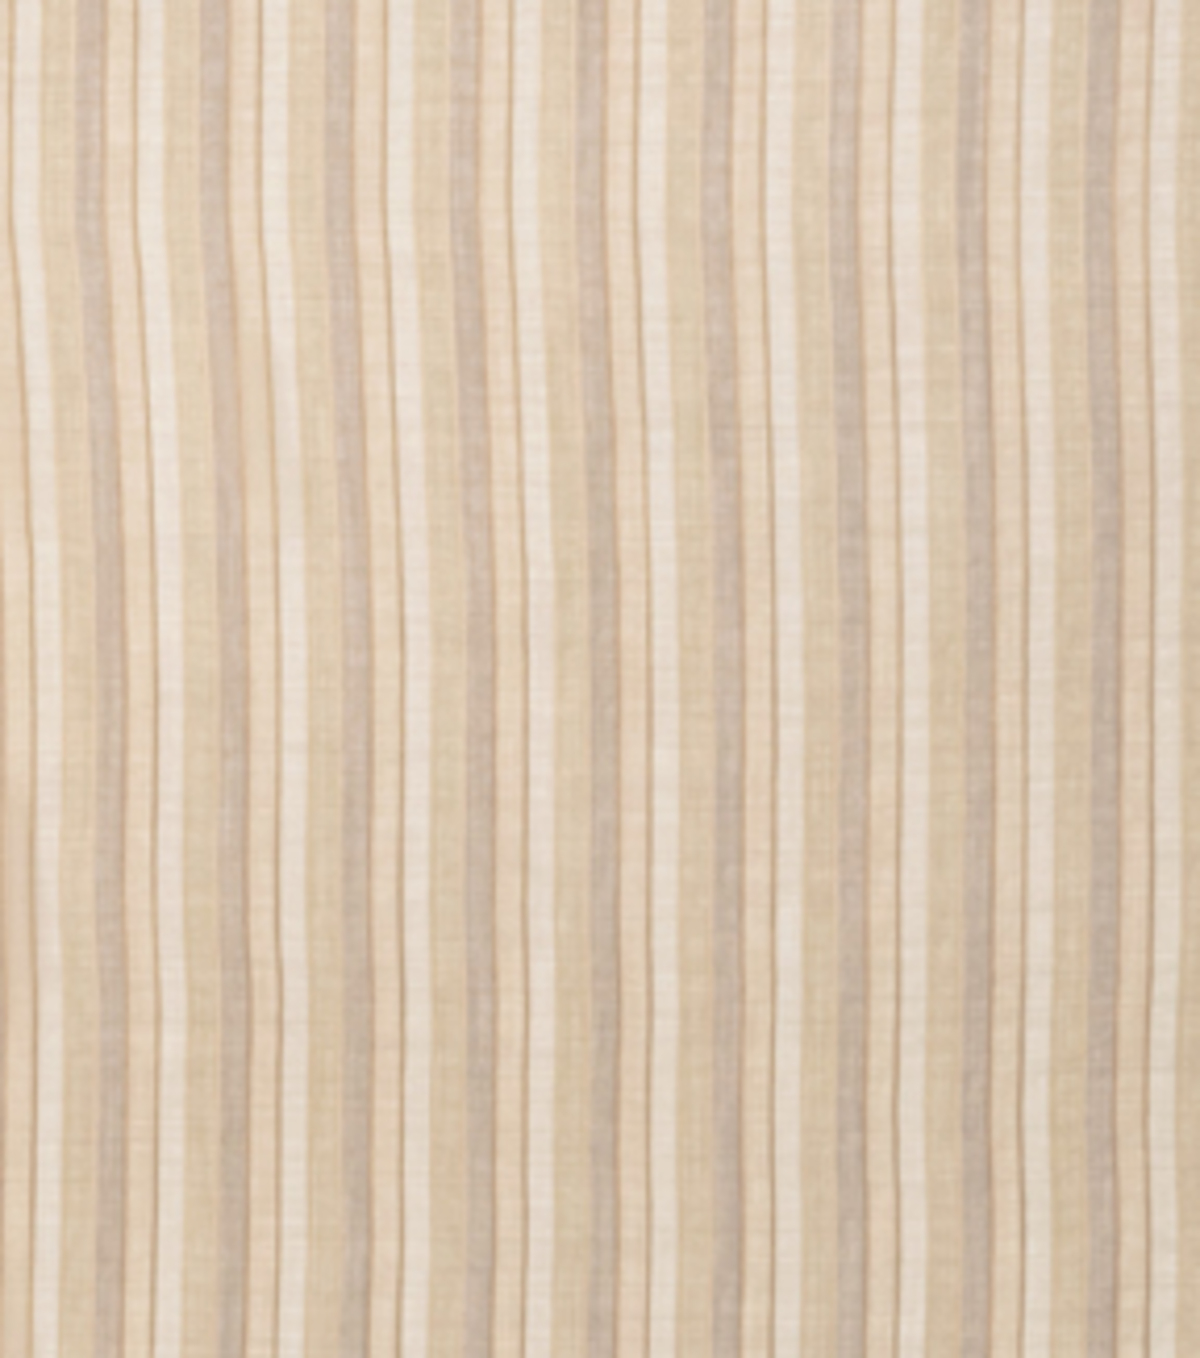 Home Decor 8\u0022x8\u0022 Fabric Swatch-Eaton Square Cosby   Straw